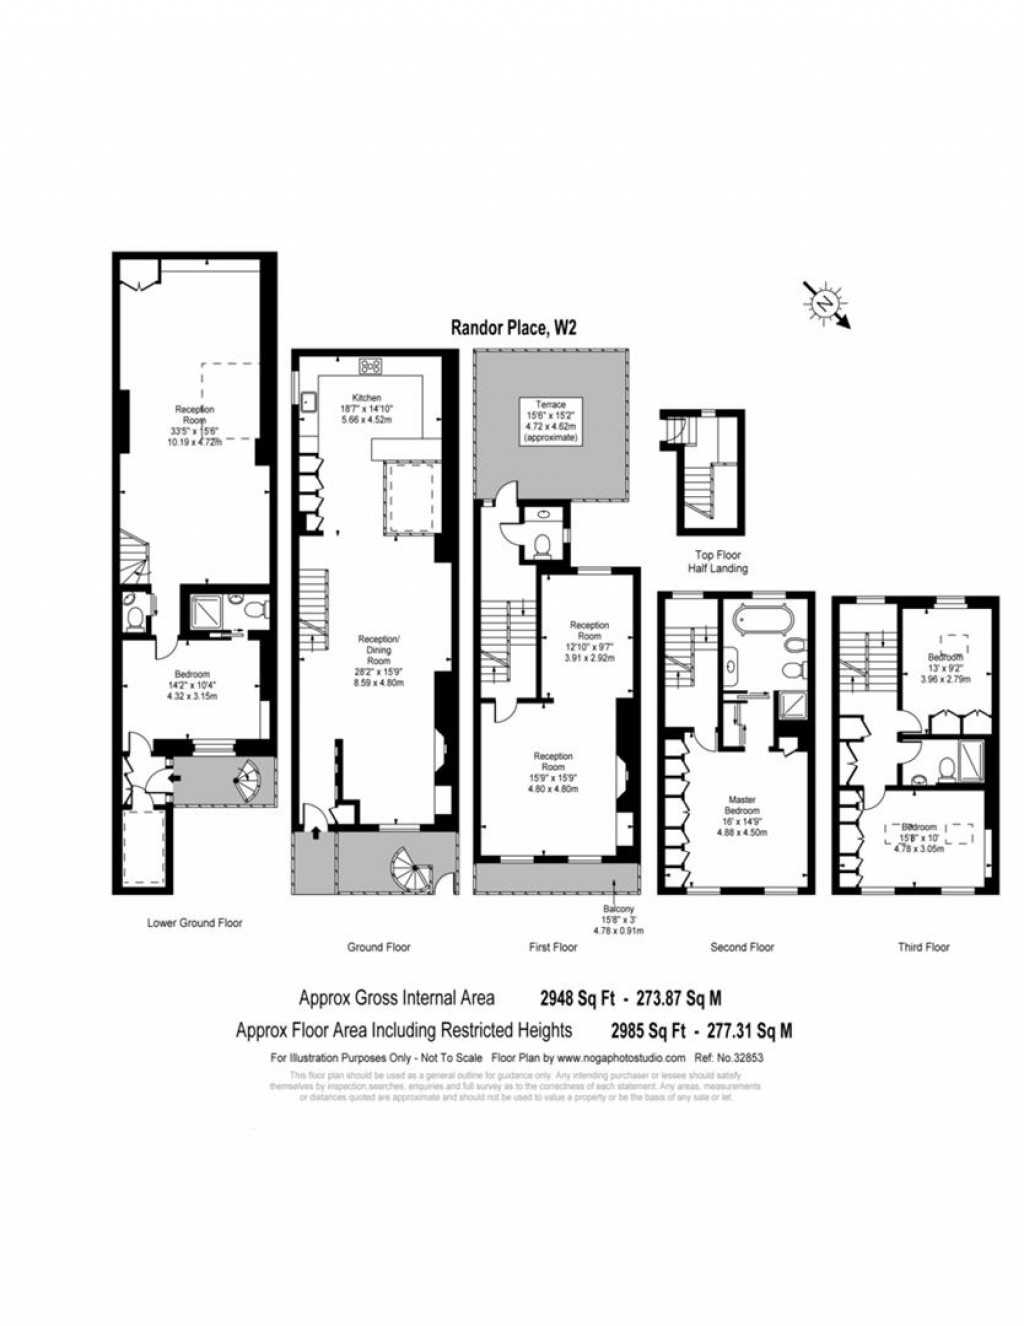 Floorplans For Radnor Place, Paddington